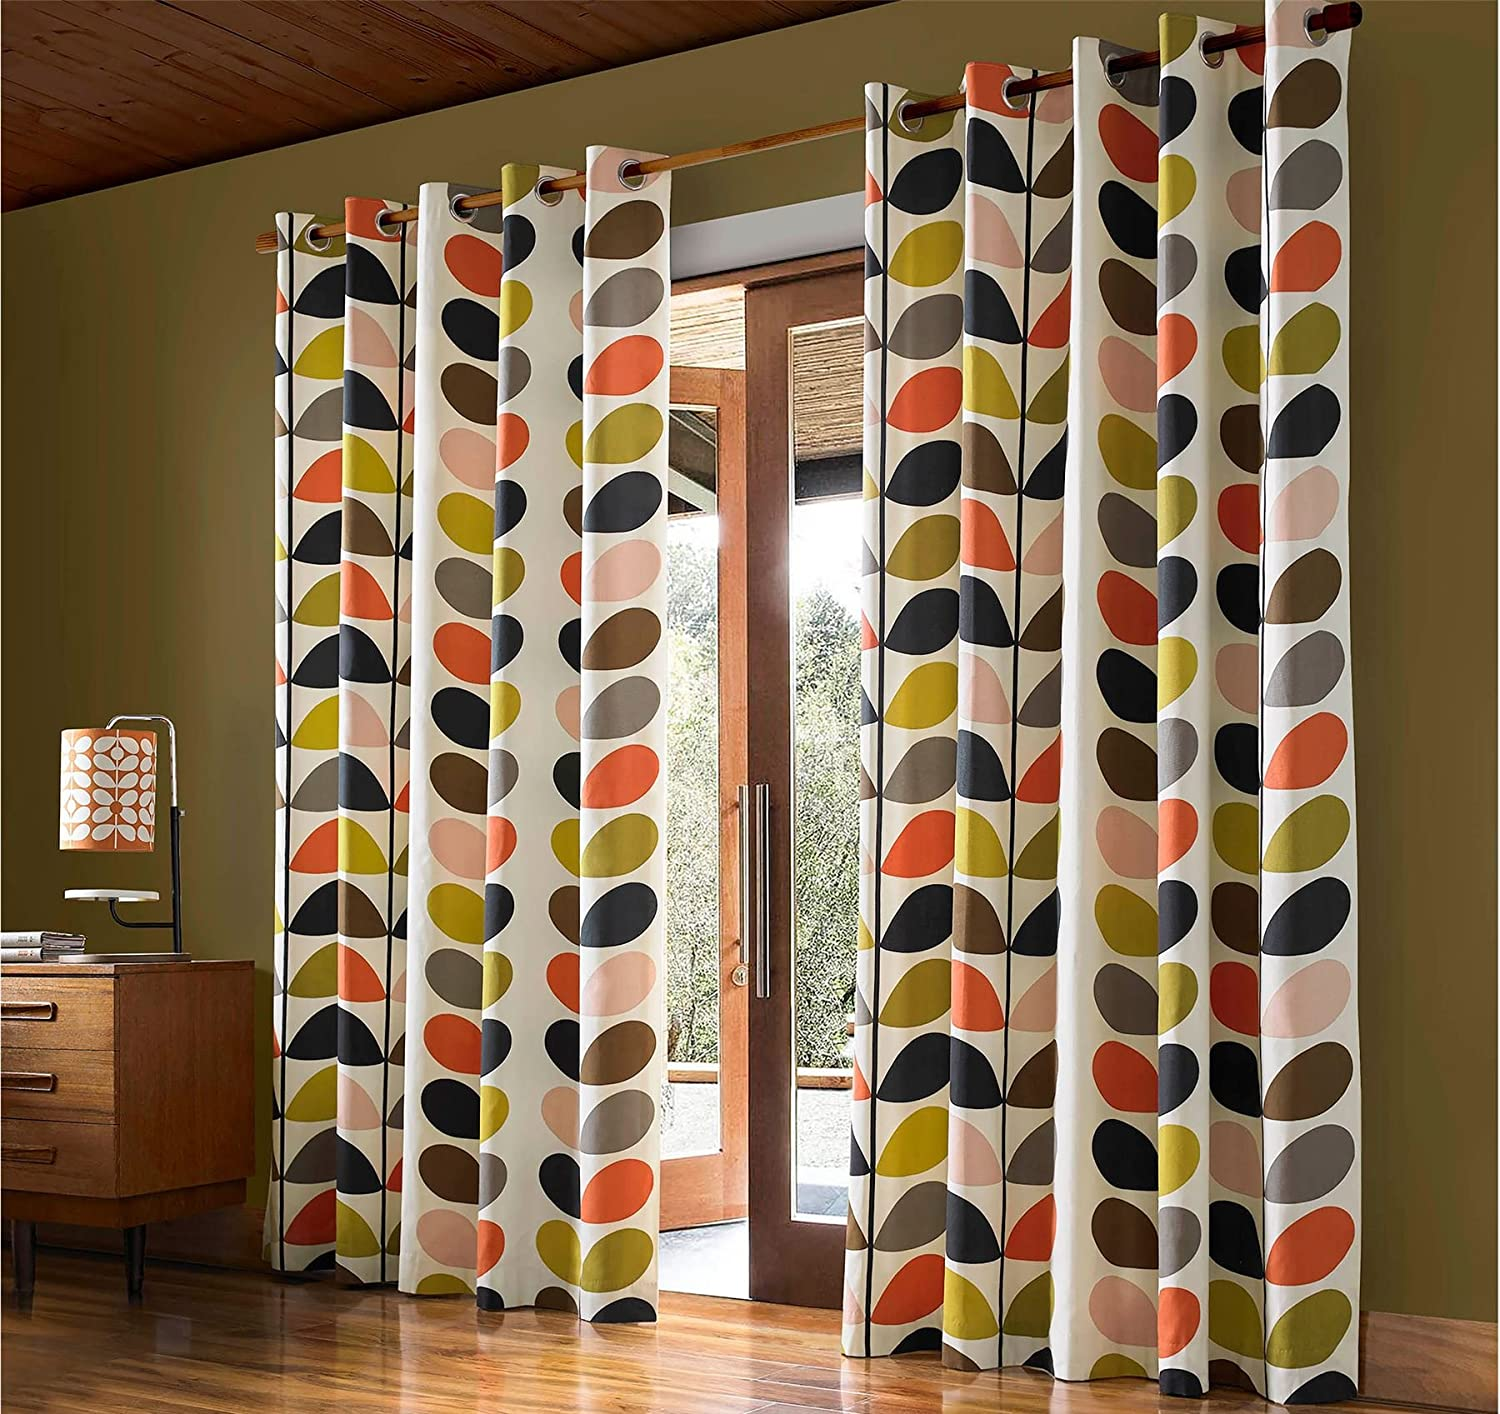 Orla Kiely Multi Stem Creme Orange Grün 167,6 x 228,6 cm – 168 cm x 229 cm Ring Top Vorhänge